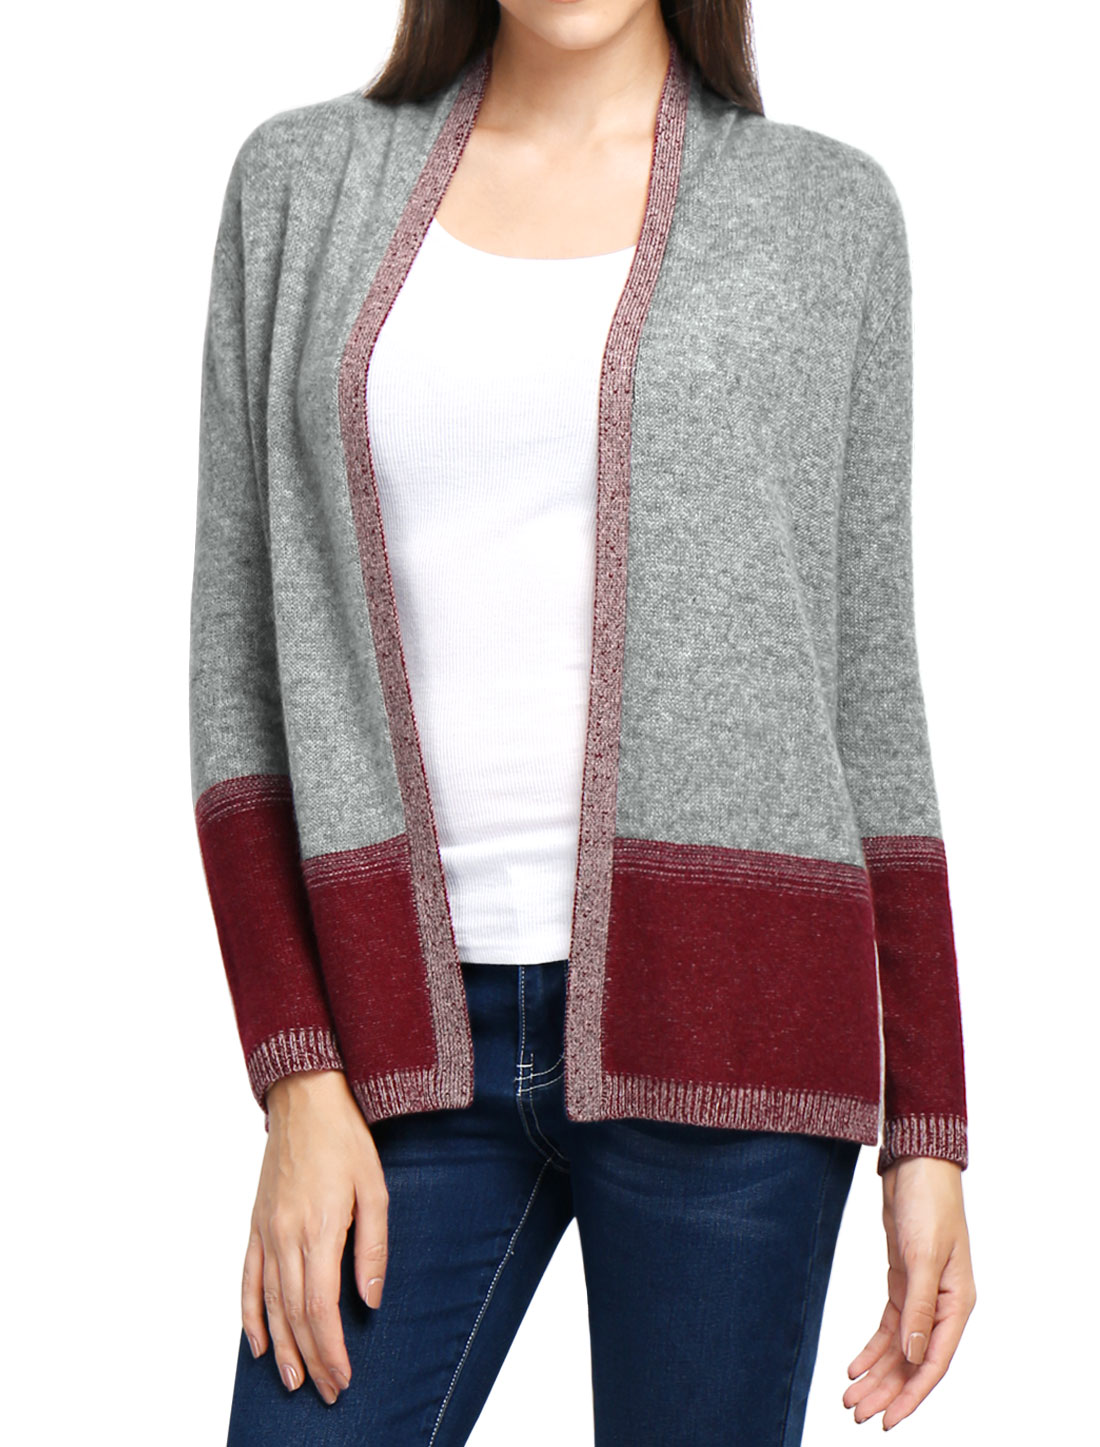 Women Contrast Color Plaited Cashmere Cardigan Gray S